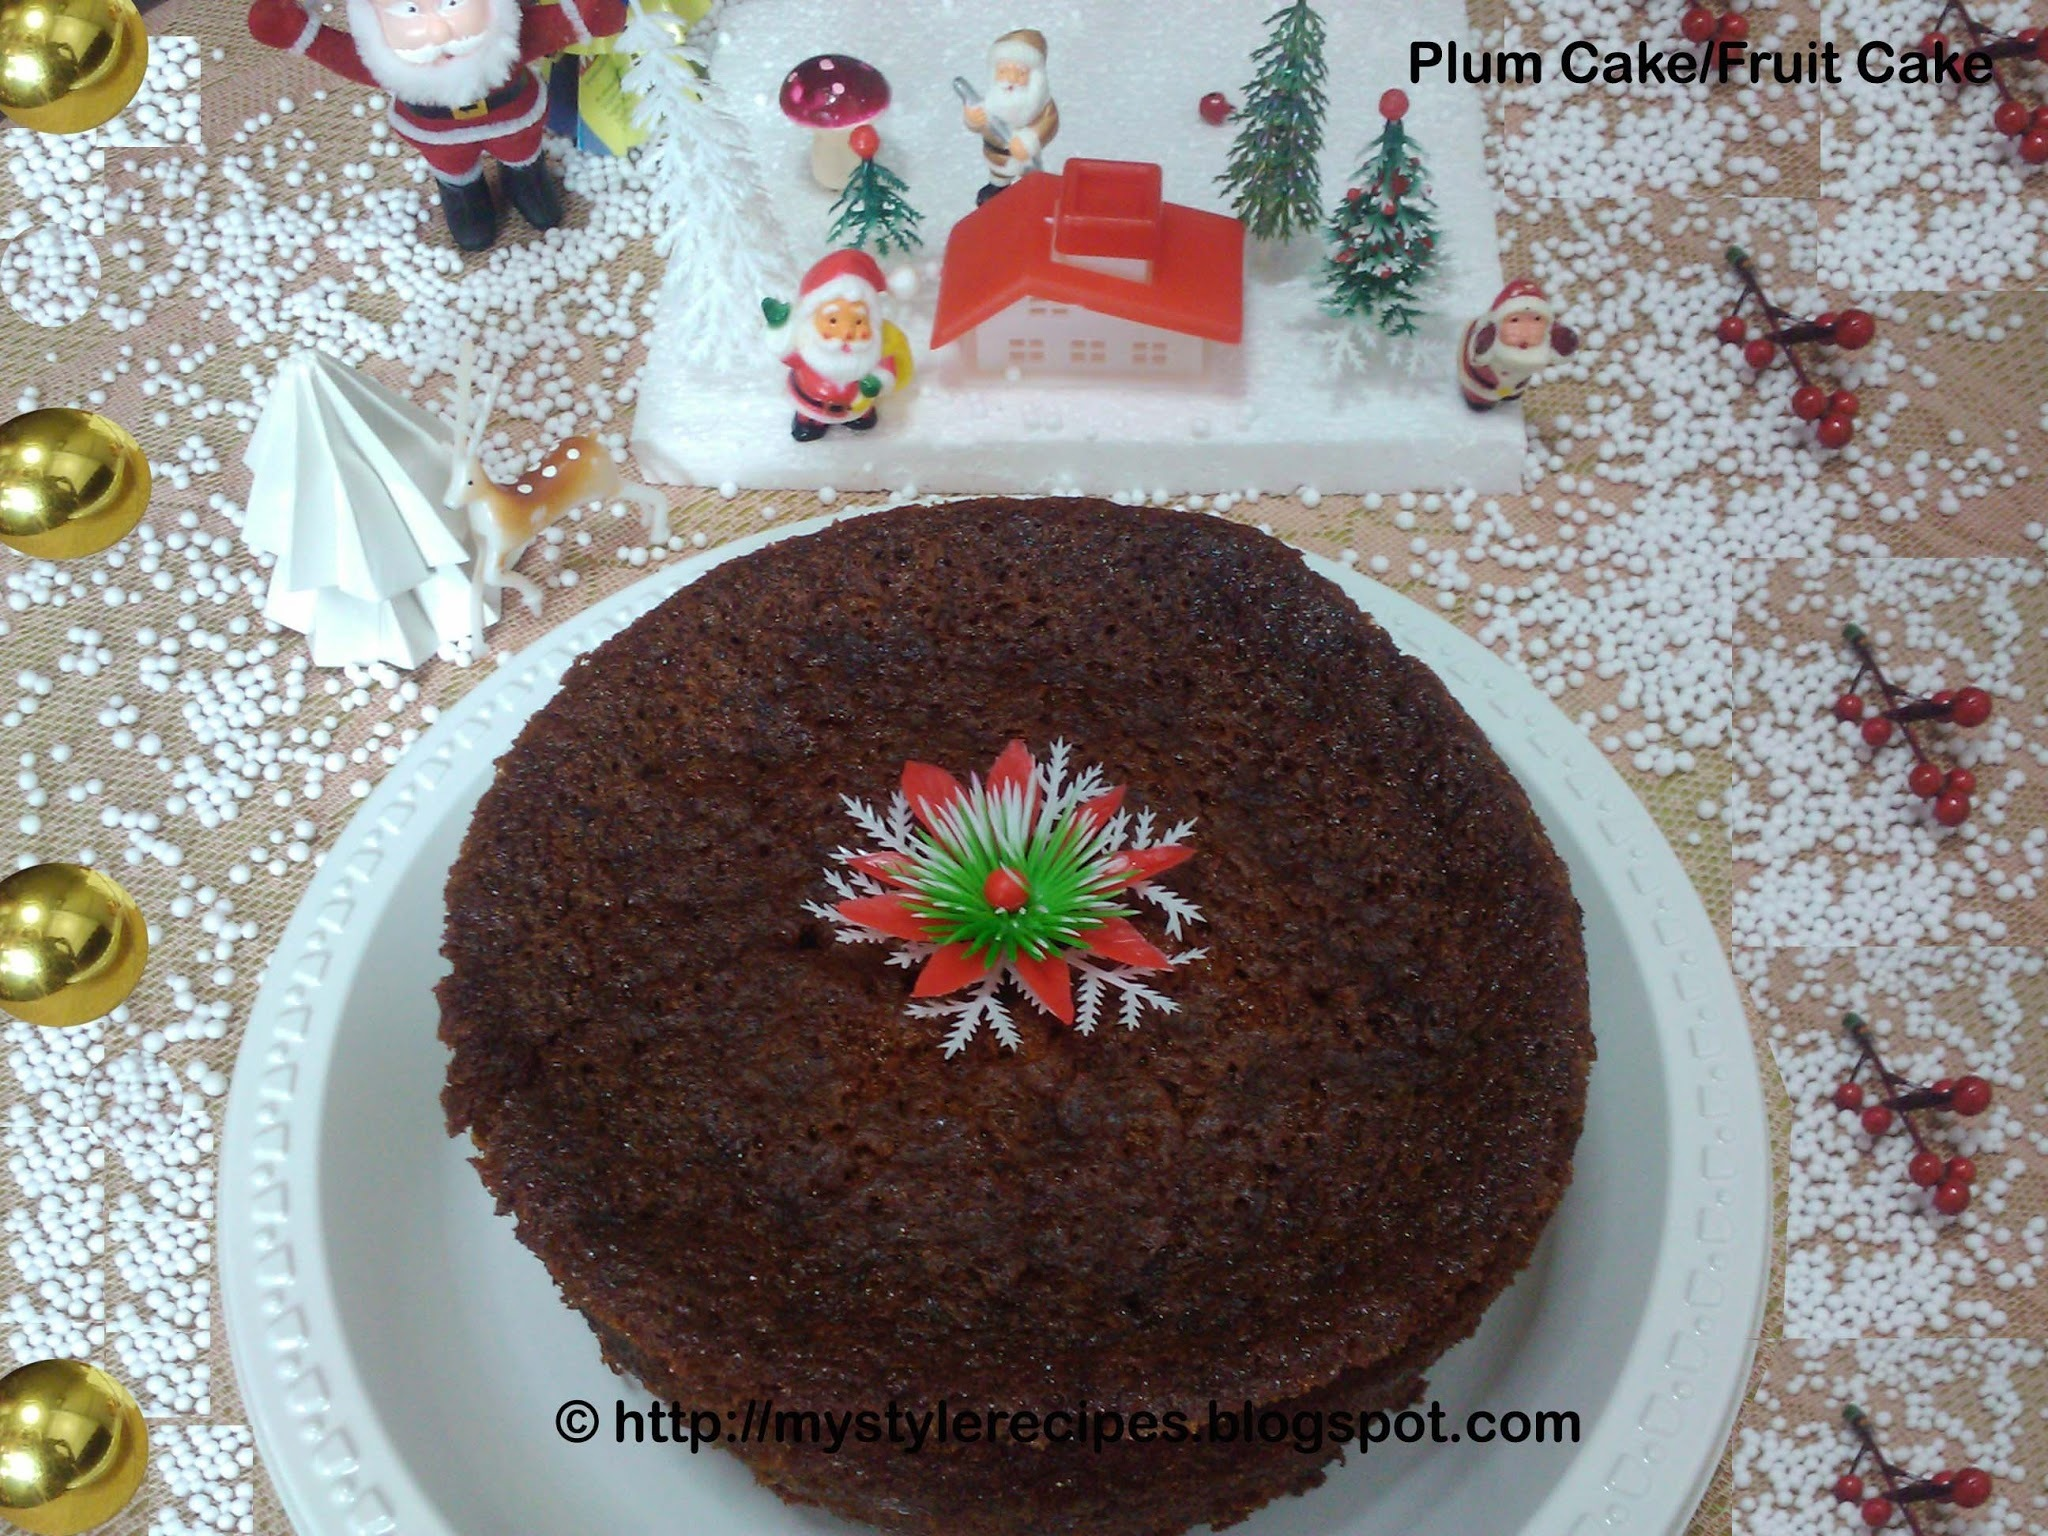 Plum Cake/Fruit Cake - A Christmas Cake Recipe